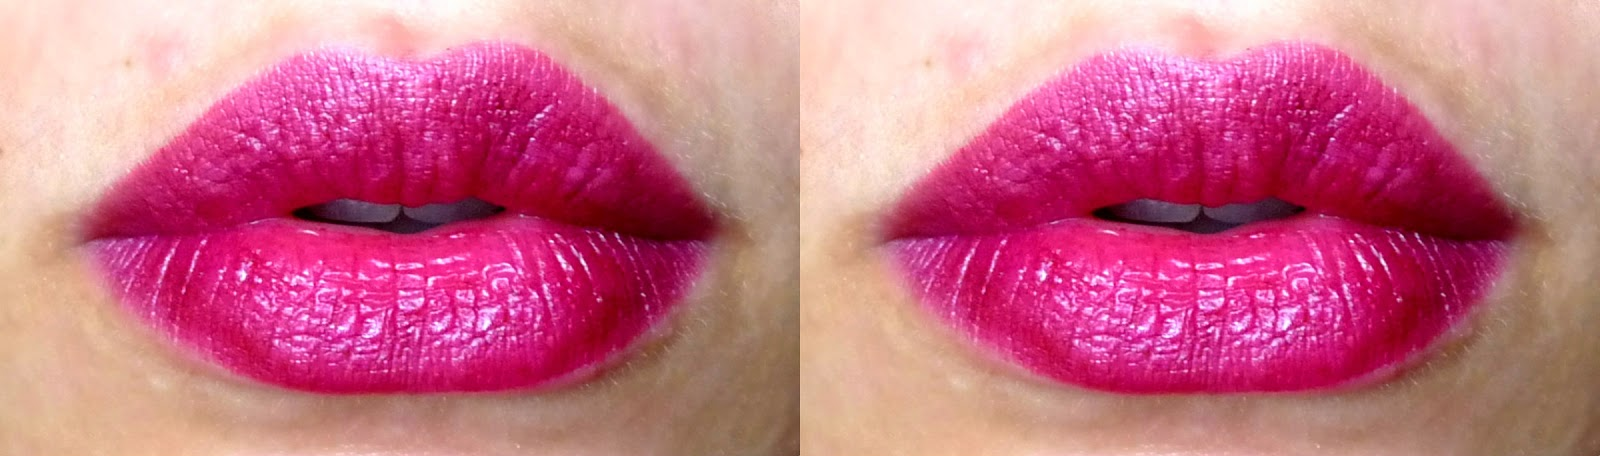 Makeup Revolution Rebel With Cause Lipstick Review swatch swatches sample